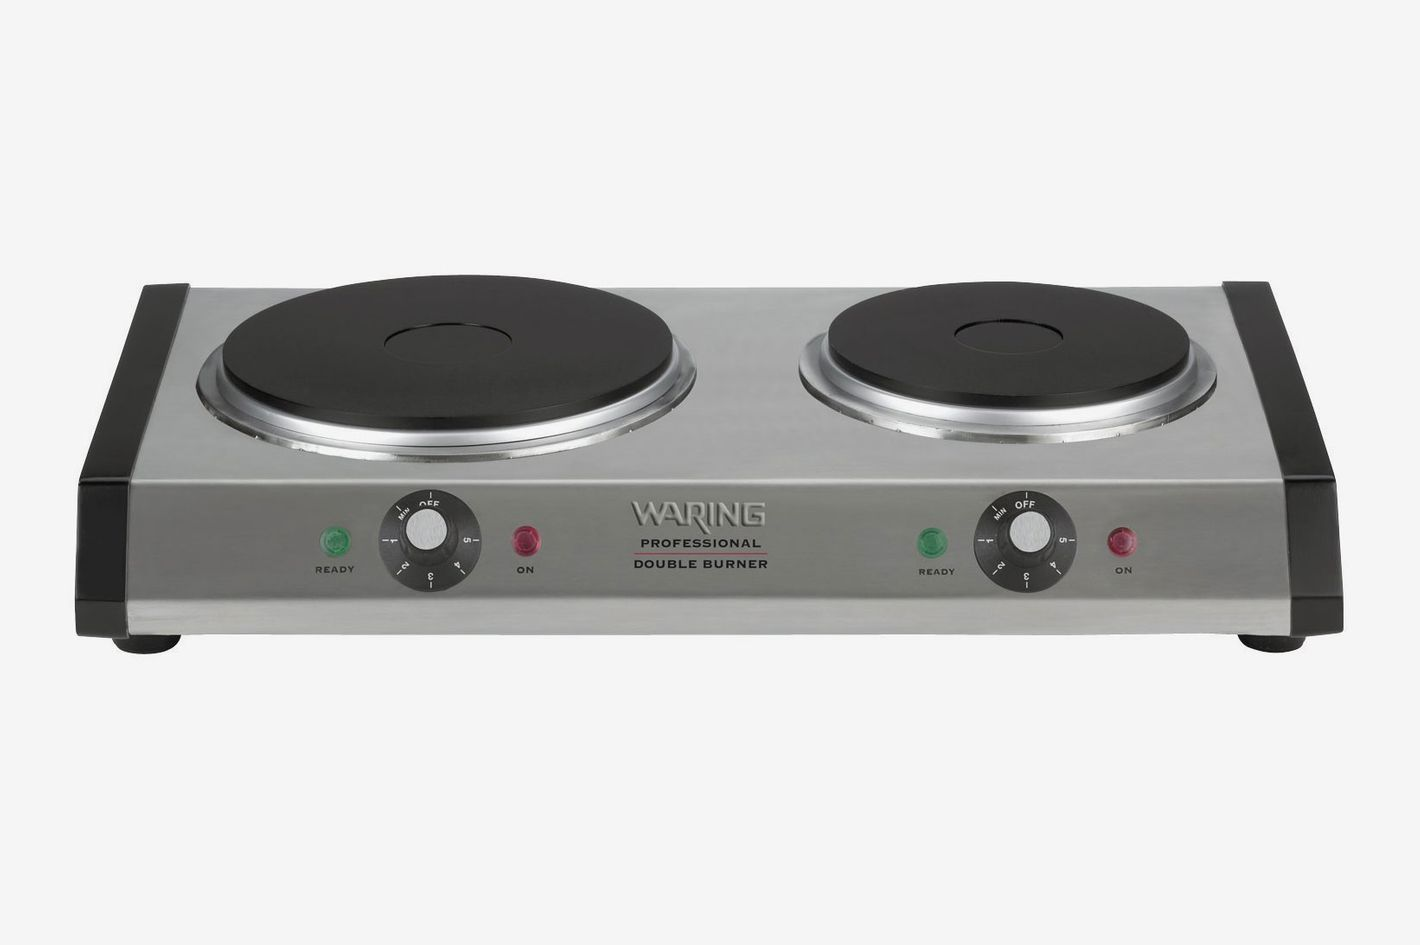 Waring Db60 Portable Double Burner